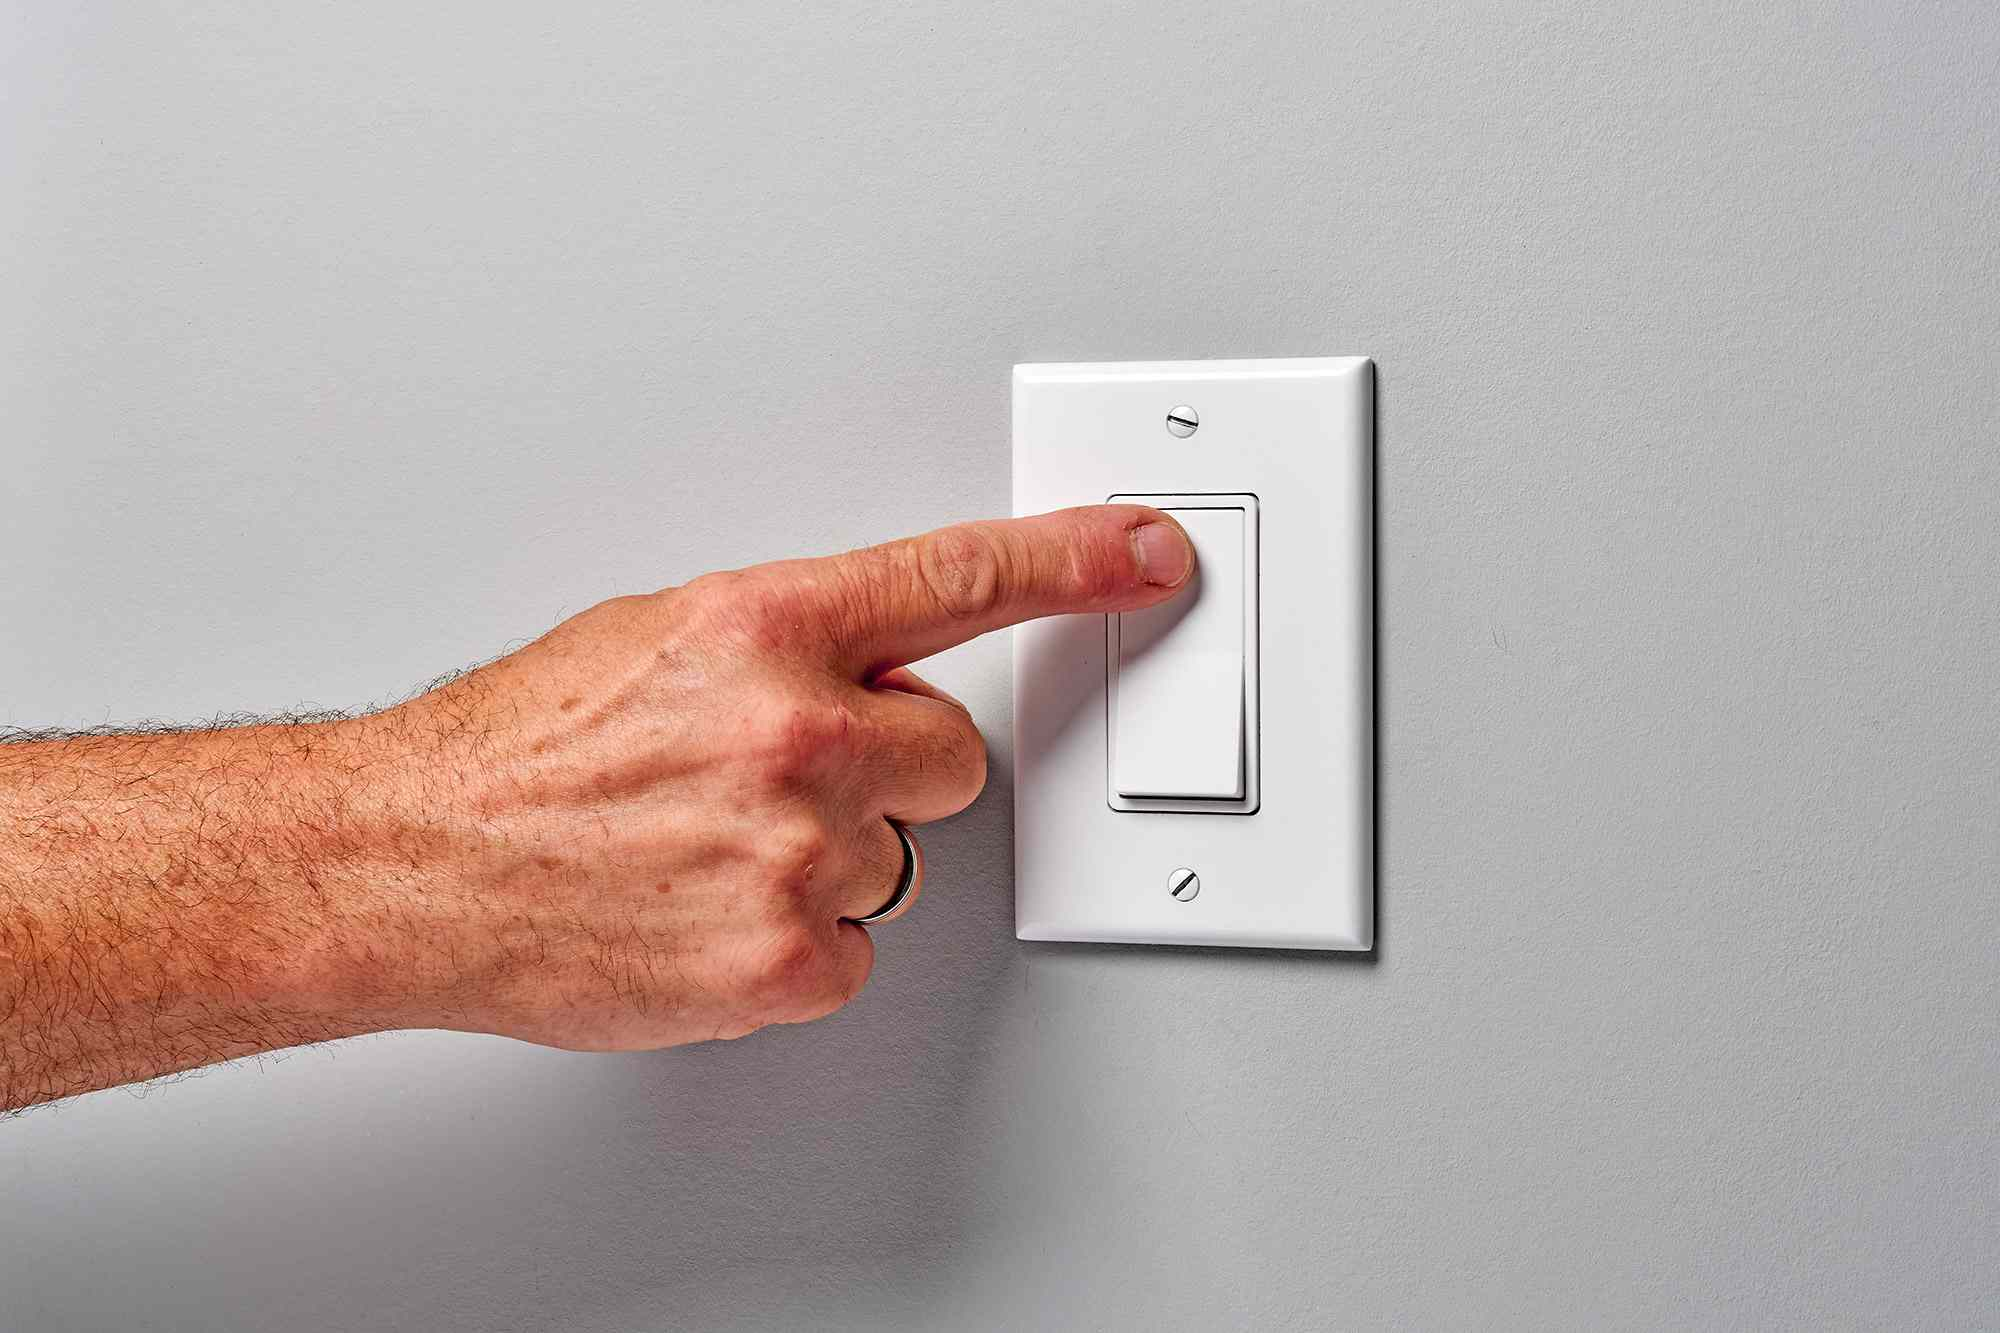 Light switch pressed and turned on to test the circuit